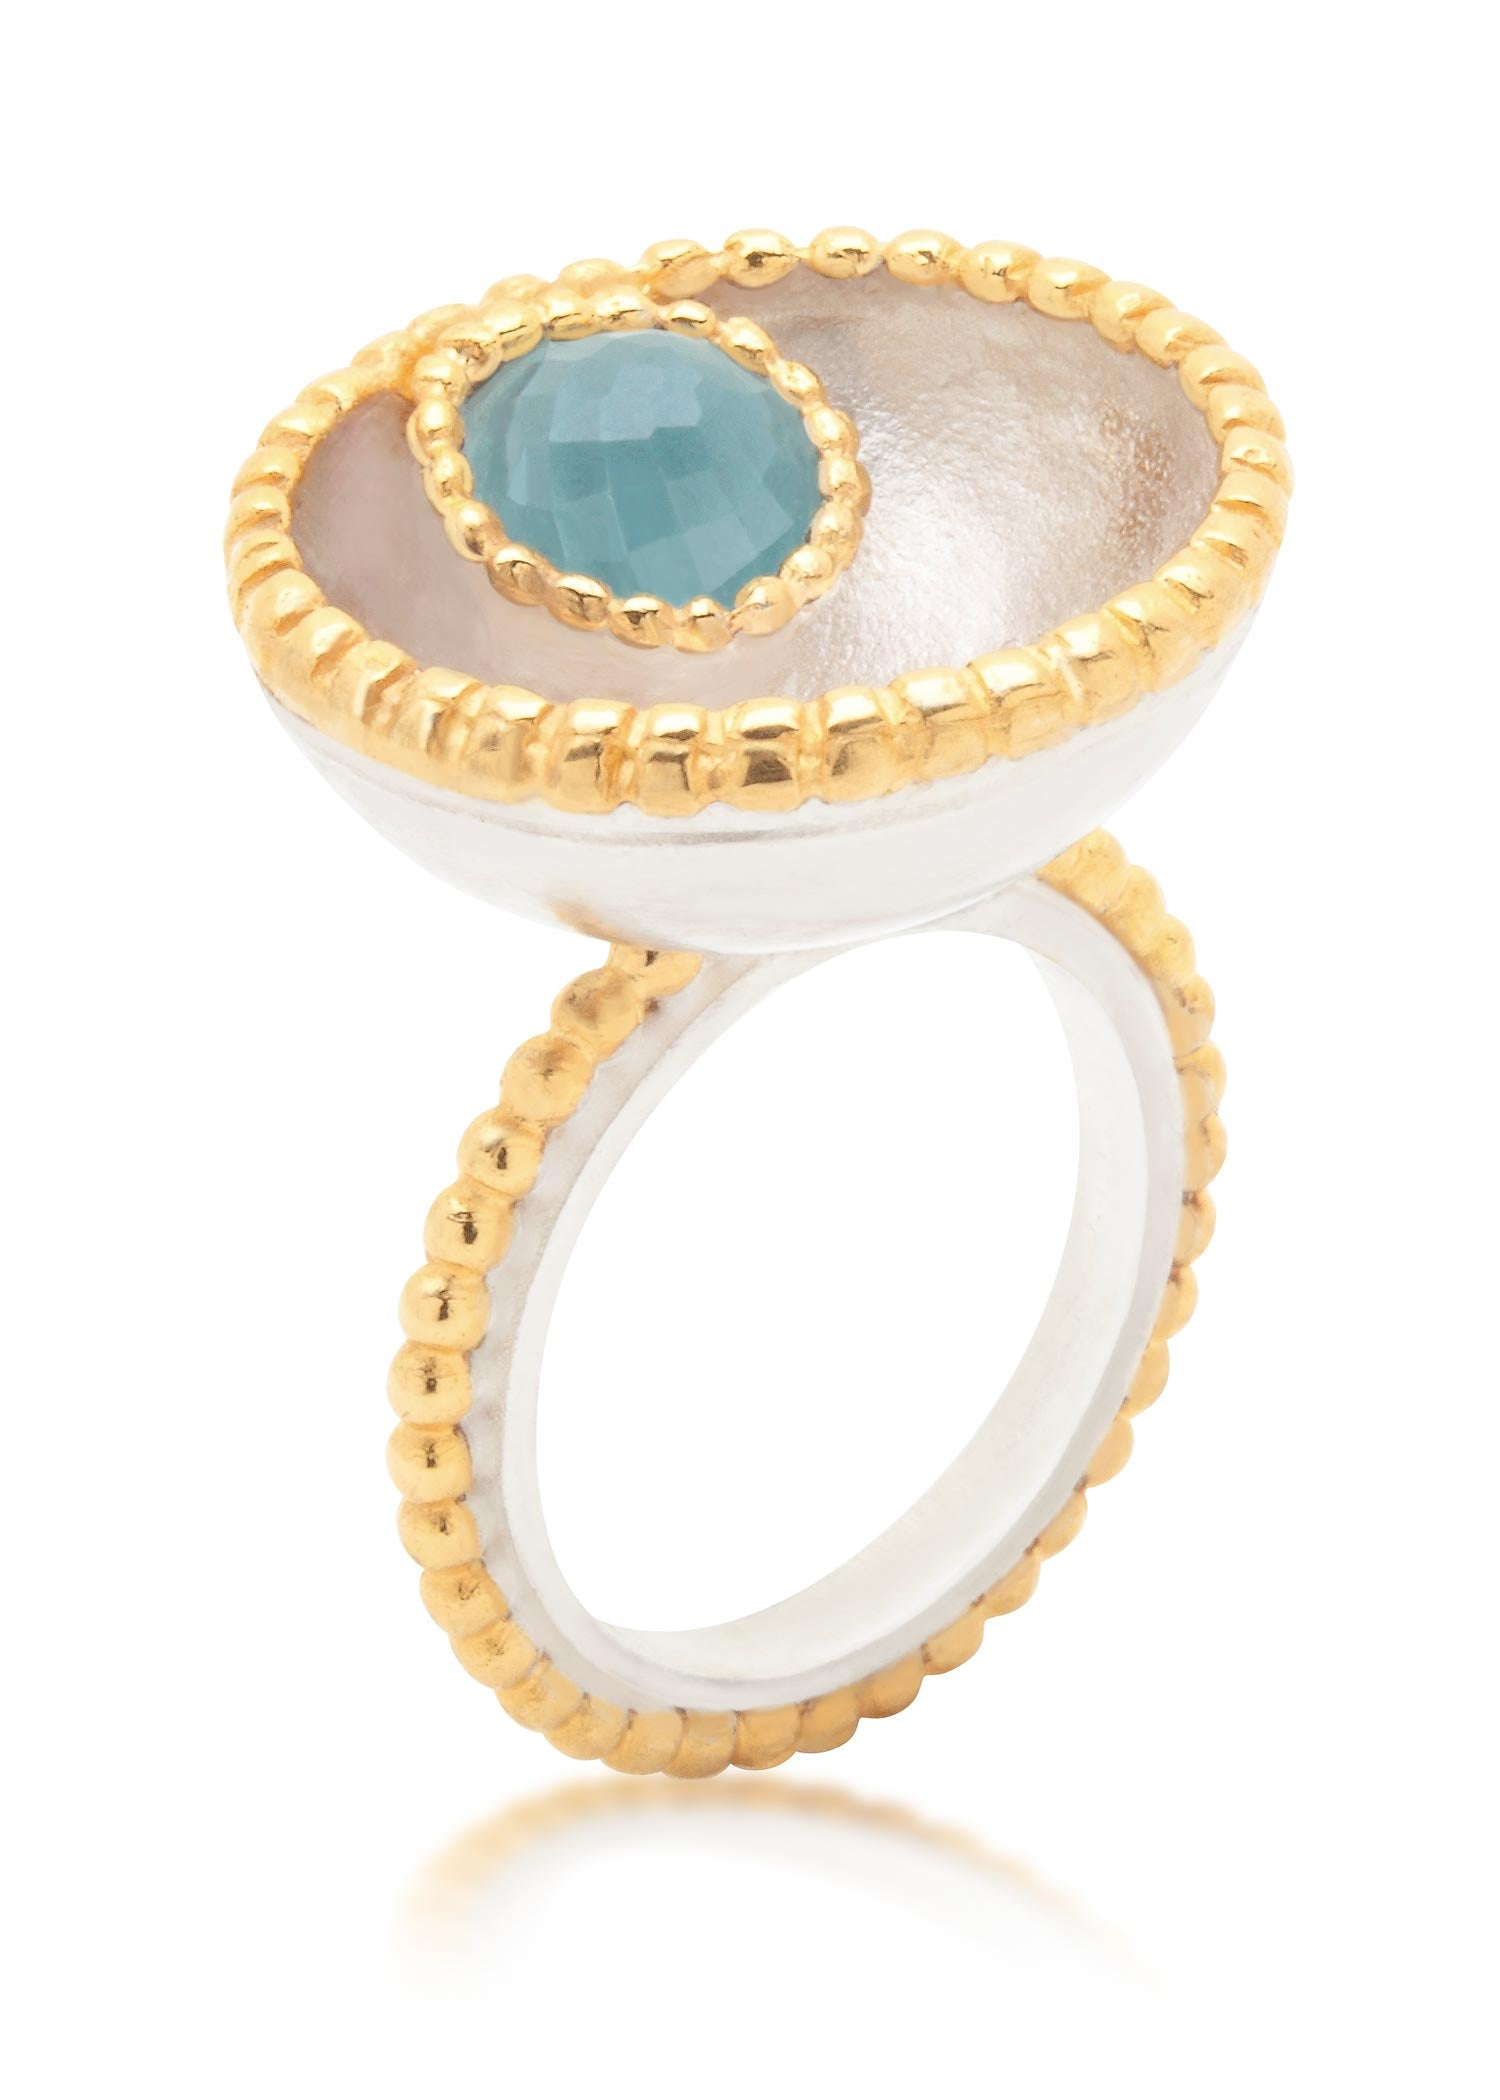 Large Byzantine Ring with gold vermeil and blue topaz